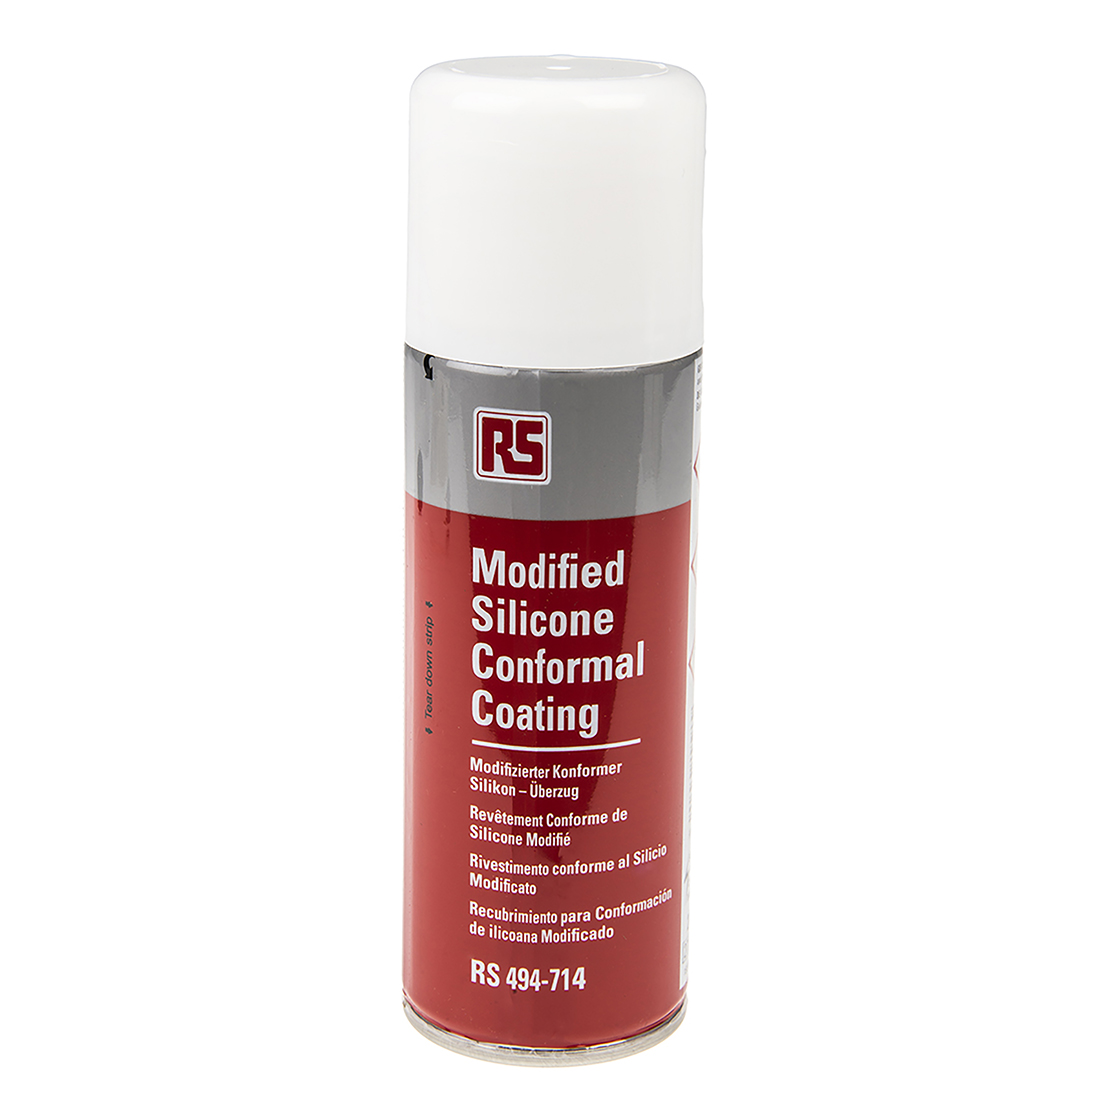 RS PRO transparent 200 ml Aerosol Conformal Coating for PCBs, -70 → +200 °C